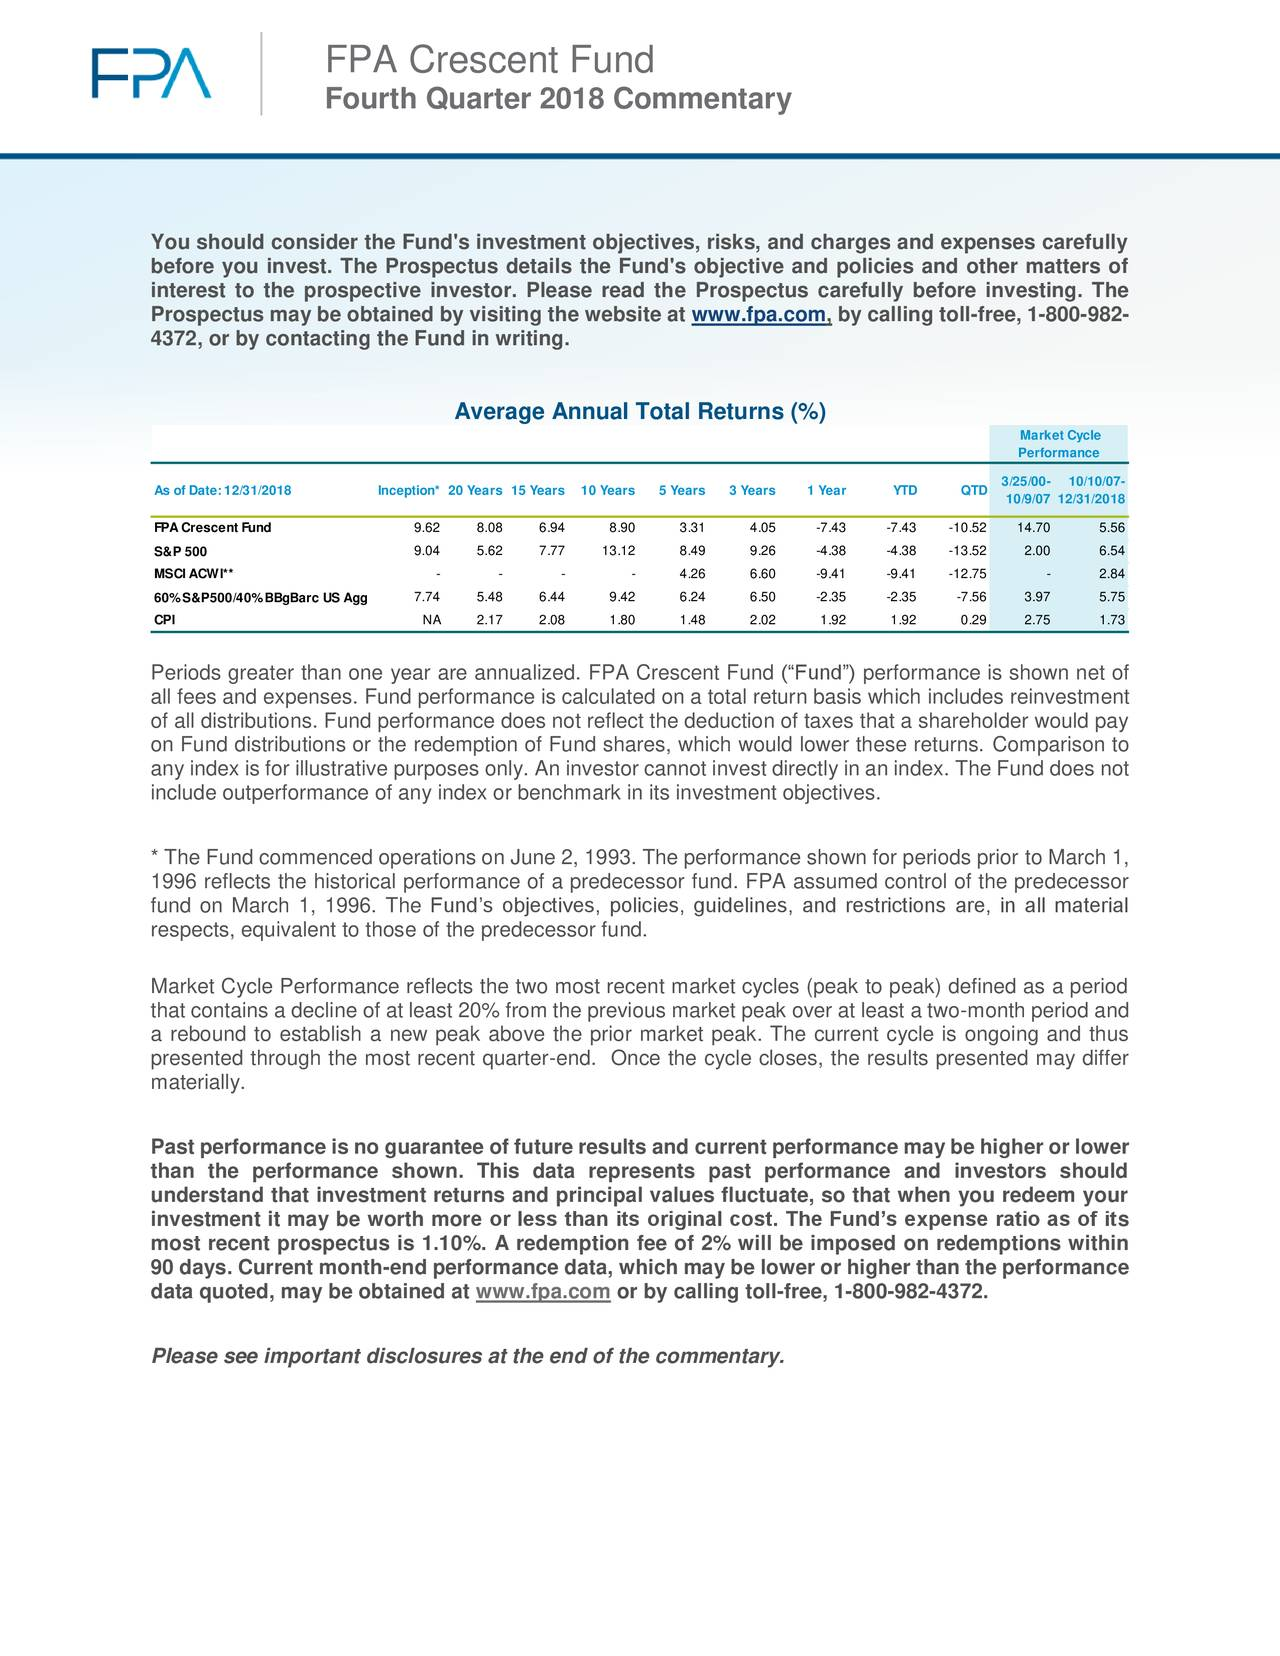 "Fourth Quarter 2018 Commentary You should consider the Fund's investment objectives, risks, and charges and expenses carefully before you invest. The Prospectus details the Fund's objective and policies and other matters of interest to the prospective investor. Please read the Prospectus carefully before investing. The Prospectus may be obtained by visiting the website at www.fpa.com, by calling toll-free, 1-800-982- 4372, or by contacting the Fund in writing. Average Annual Total Returns (%) Market Cycle Performance As of Date:12/31/2018 Inception* 20 Years 15 Years10 Years 5 Years 3 Years 1 Year YTD QTD 3/25/00- 10/10/07- 10/9/07 12/31/2018 FPACrescent Fund 9.62 8.08 6.94 8.90 3.31 4.05 -7.43 -7.43 -10.52 14.70 5.56 S&P 500 9.04 5.62 7.77 13.12 8.49 9.26 -4.38 -4.38 -13.52 2.00 6.54 MSCI ACWI** - - - - 4.26 6.60 -9.41 -9.41 -12.75 - 2.84 60%S&P500/40%BBgBarc US Agg 7.74 5.48 6.44 9.42 6.24 6.50 -2.35 -2.35 -7.56 3.97 5.75 CPI NA 2.17 2.08 1.80 1.48 2.02 1.92 1.92 0.29 2.75 1.73 Periods greater than one year are annualized. FPA Crescent Fund (""Fund"") performance is shown net of all fees and expenses. Fund performance is calculated on a total return basis which includes reinvestment of all distributions. Fund performance does not reflect the deduction of taxes that a shareholder would pay on Fund distributions or the redemption of Fund shares, which would lower these returns. Comparison to any index is for illustrative purposes only. An investor cannot invest directly in an index. The Fund does not include outperformance of any index or benchmark in its investment objectives. * The Fund commenced operations on June 2, 1993. The performance shown for periods prior to March 1, 1996 reflects the historical performance of a predecessor fund. FPA assumed control of the predecessor fund on March 1, 1996. The Fund's objectives, policies, guidelines, and restrictions are, in all material respects, equivalent to those of the predecessor fund. Market Cycle Performance reflects the two most recent market cycles (peak to peak) defined as a period that contains a decline of at least 20% from the previous market peak over at least a two-month period and a rebound to establish a new peak above the prior market peak. The current cycle is ongoing and thus presented through the most recent quarter-end. Once the cycle closes, the results presented may differ materially. Past performance is no guarantee of future results and current performance may be higher or lower than the performance shown. This data represents past performance and investors should understand that investment returns and principal values fluctuate, so that when you redeem your investment it may be worth more or less than its original cost. The Fund's expense ratio as of its most recent prospectus is 1.10%. A redemption fee of 2% will be imposed on redemptions within 90 days. Current month-end performance data, which may be lower or higher than the performance data quoted, may be obtained at www.fpa.com or by calling toll-free, 1-800-982-4372. Please see important disclosures at the end of the commentary."